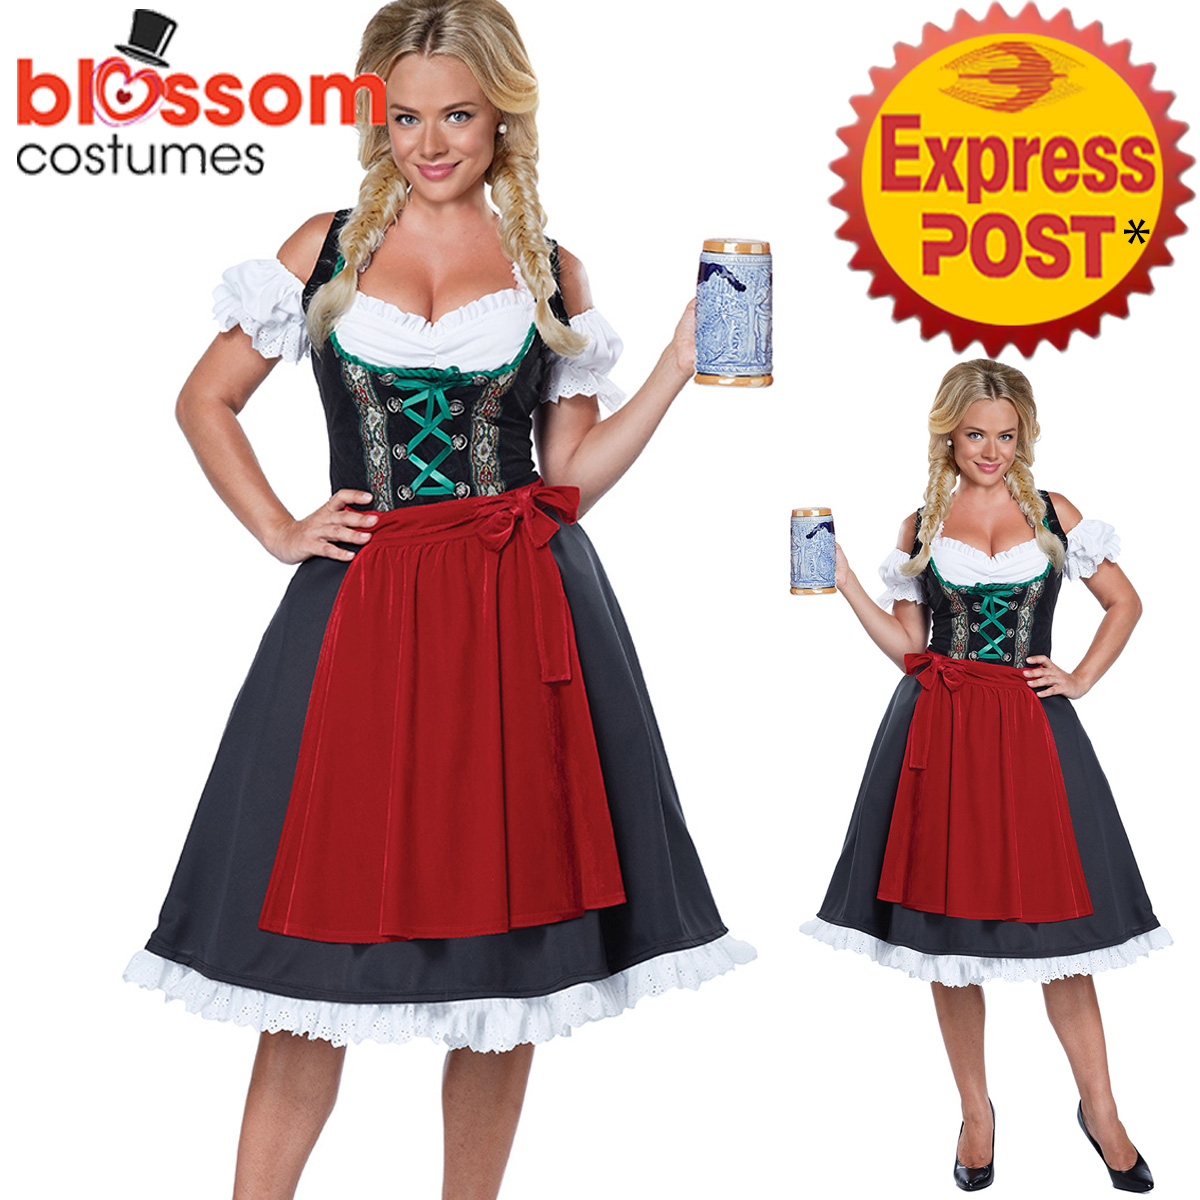 K395-Ladies-Beer-Maid-Oktoberfest-Costume-Gretchen-German-Heidi-Wench-Dress-Up